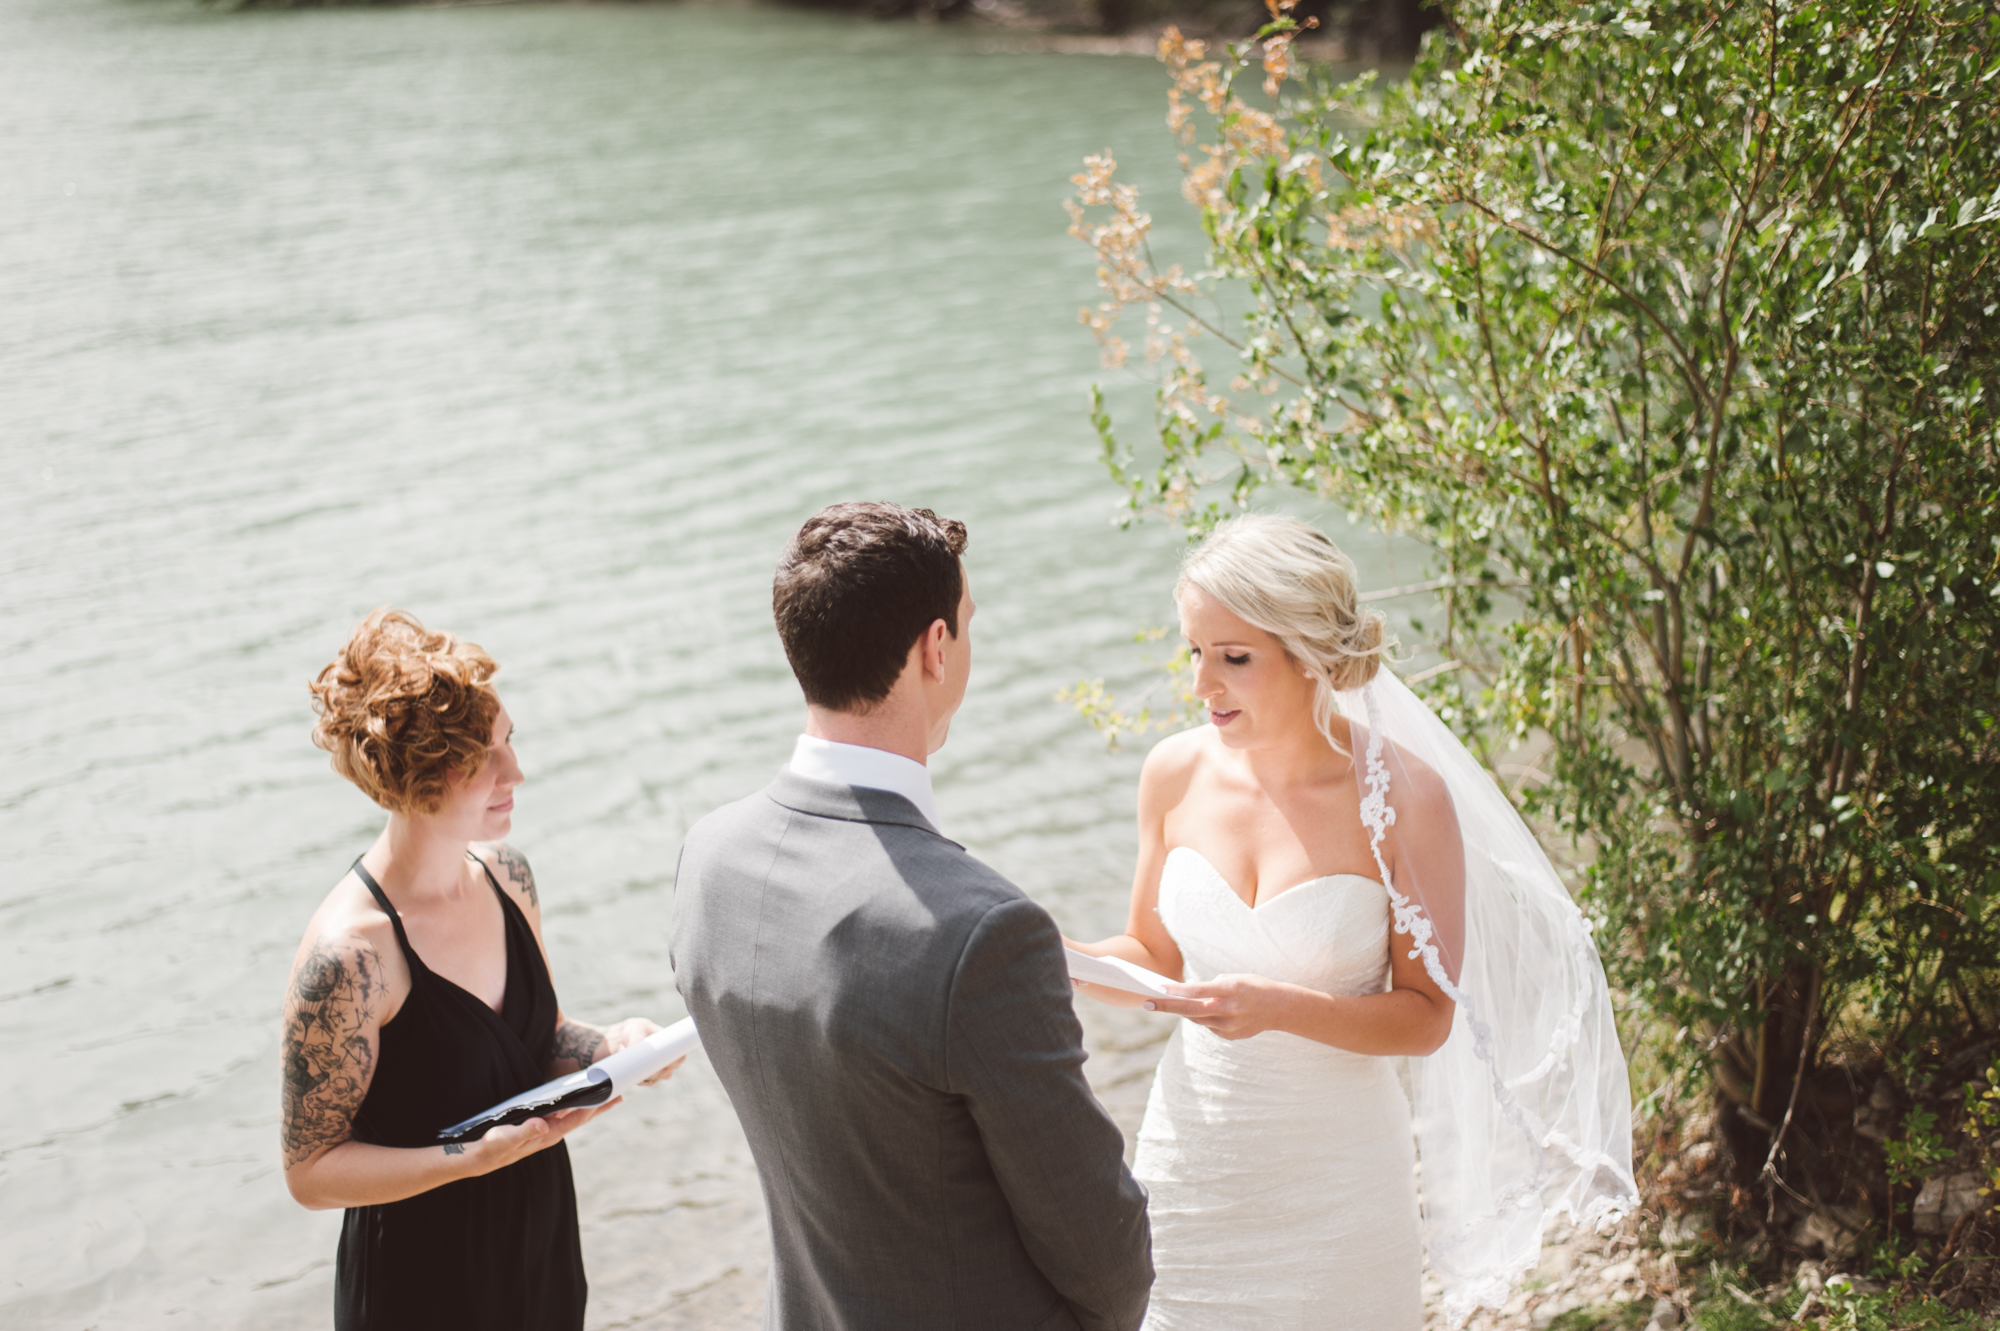 Rocky Mountain Banff Calgary Alberta Wedding-Jessika Hunter Photo-38.JPG